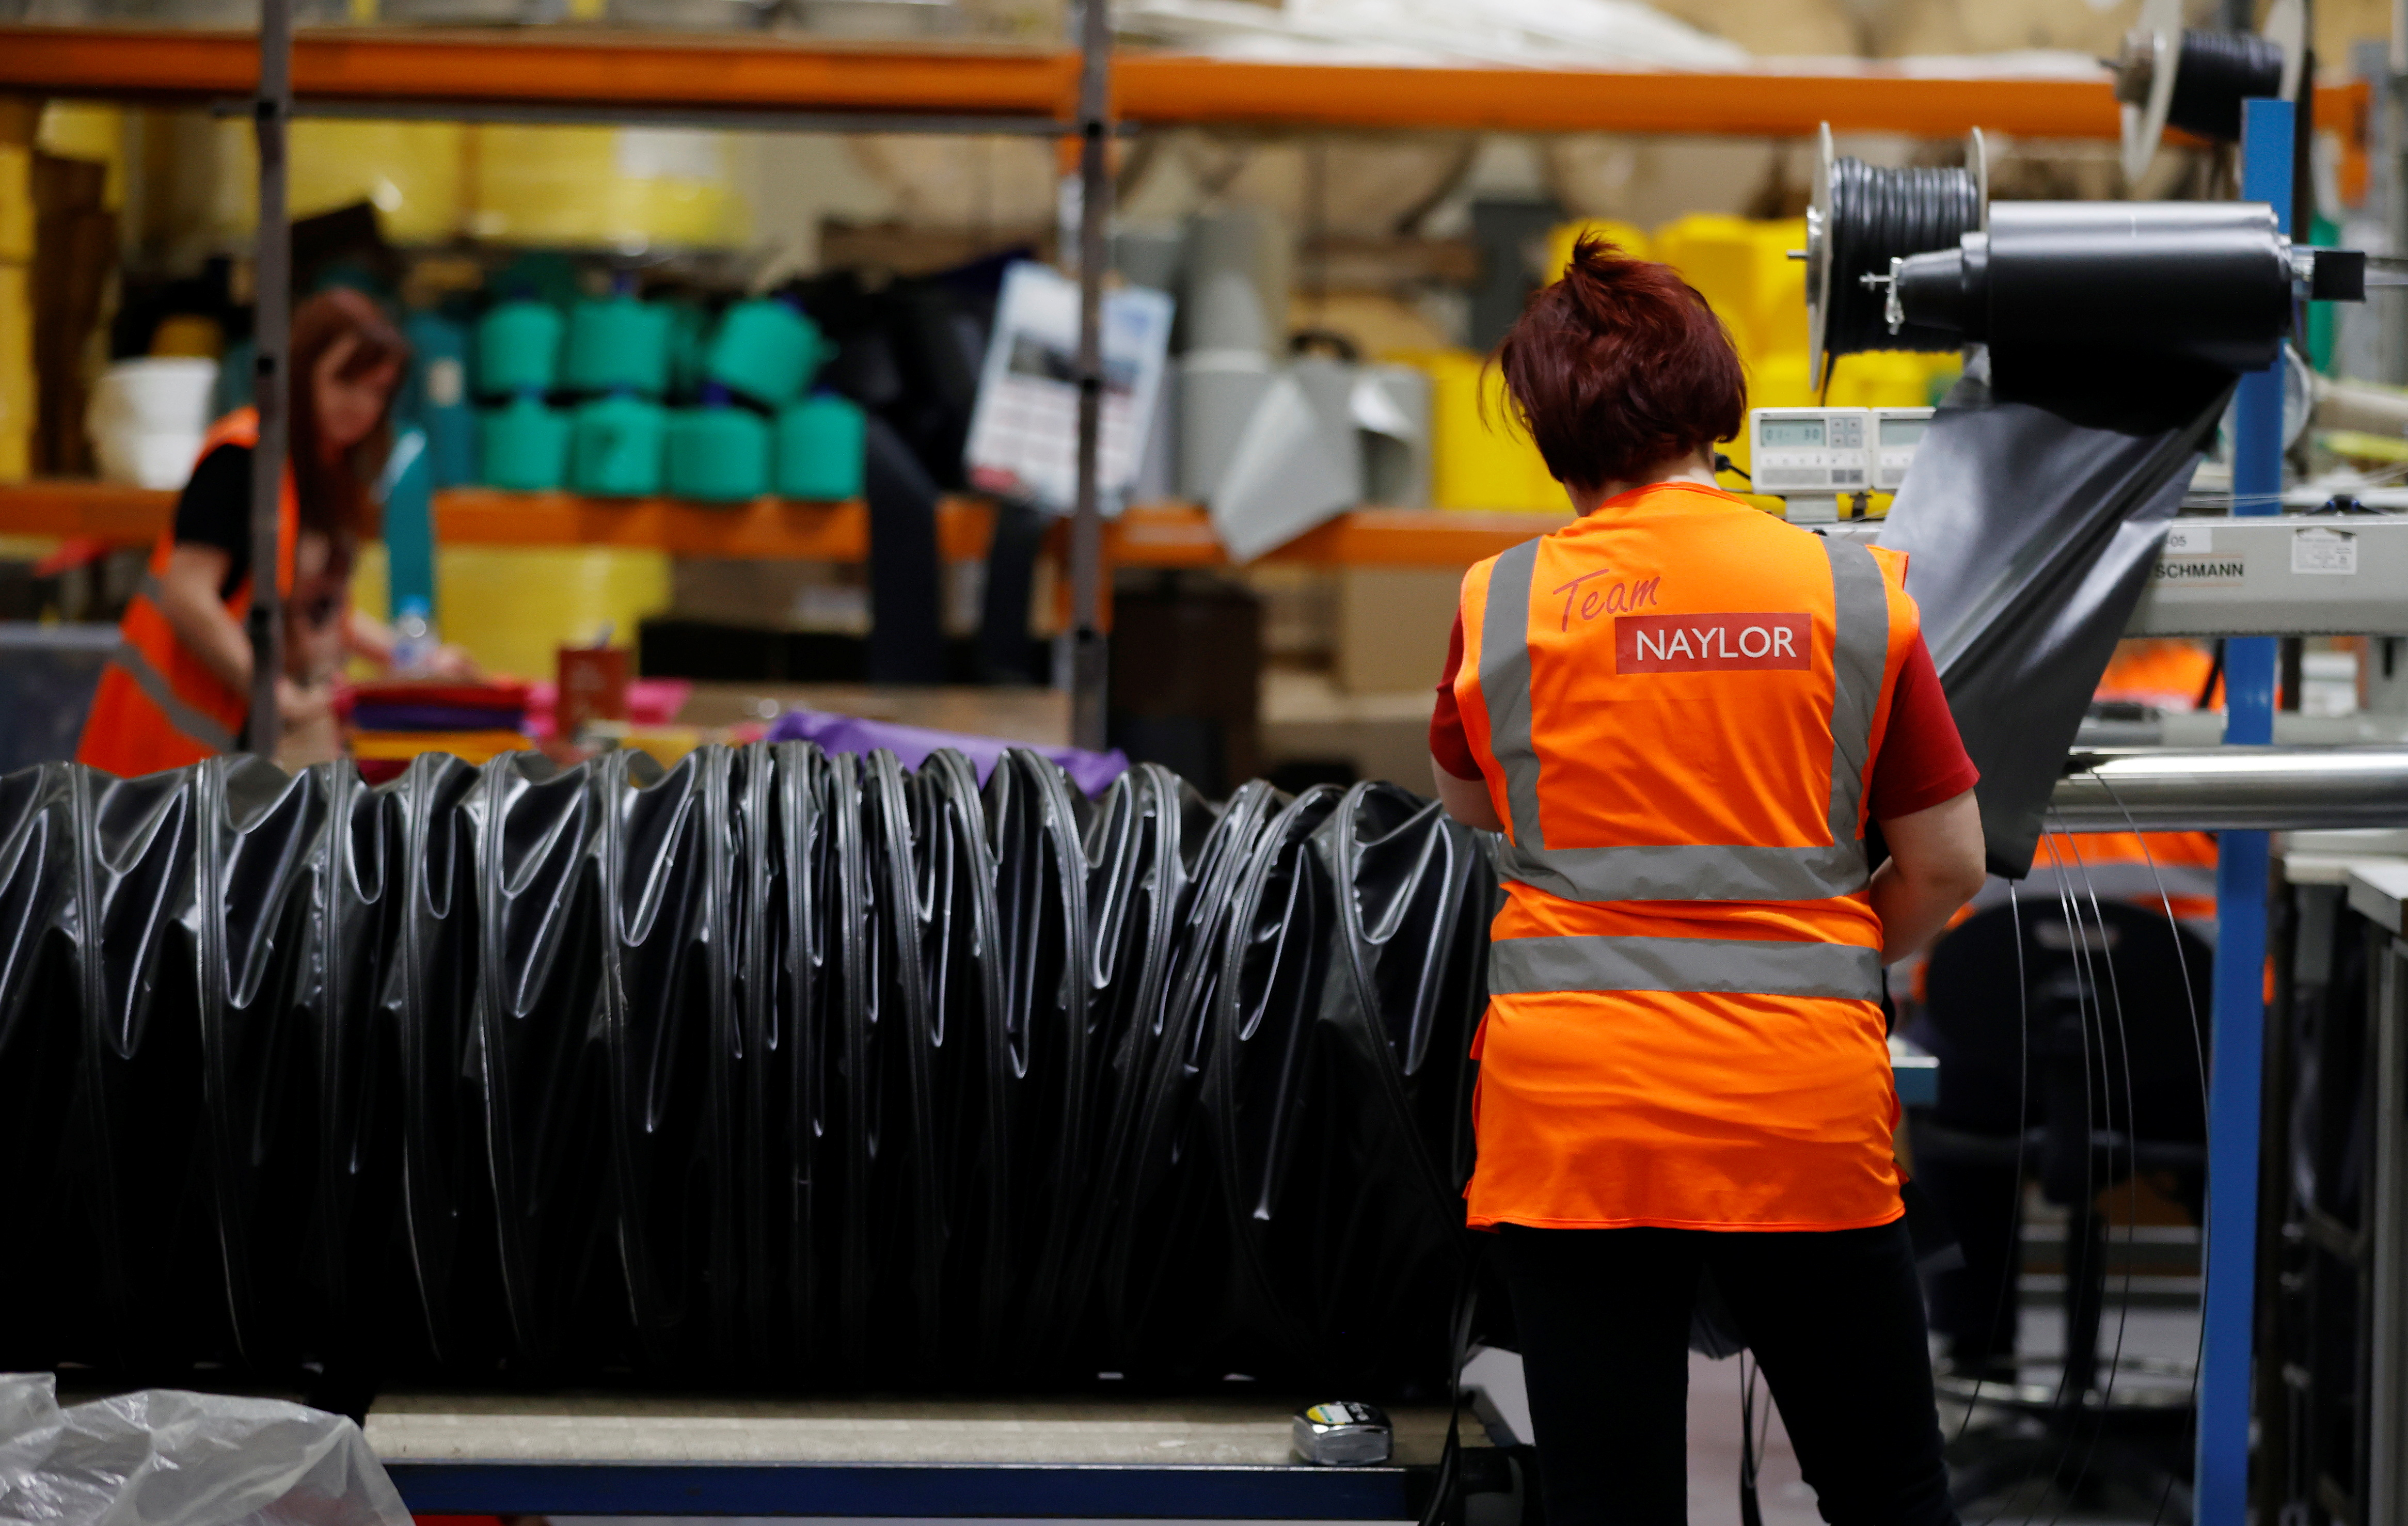 A worker constructs a length of ducting tube inside the Naylor Industries Wombwell site in Wombwell, Britain, April 27, 2021. Picture taken April 27. REUTERS/Phil Noble